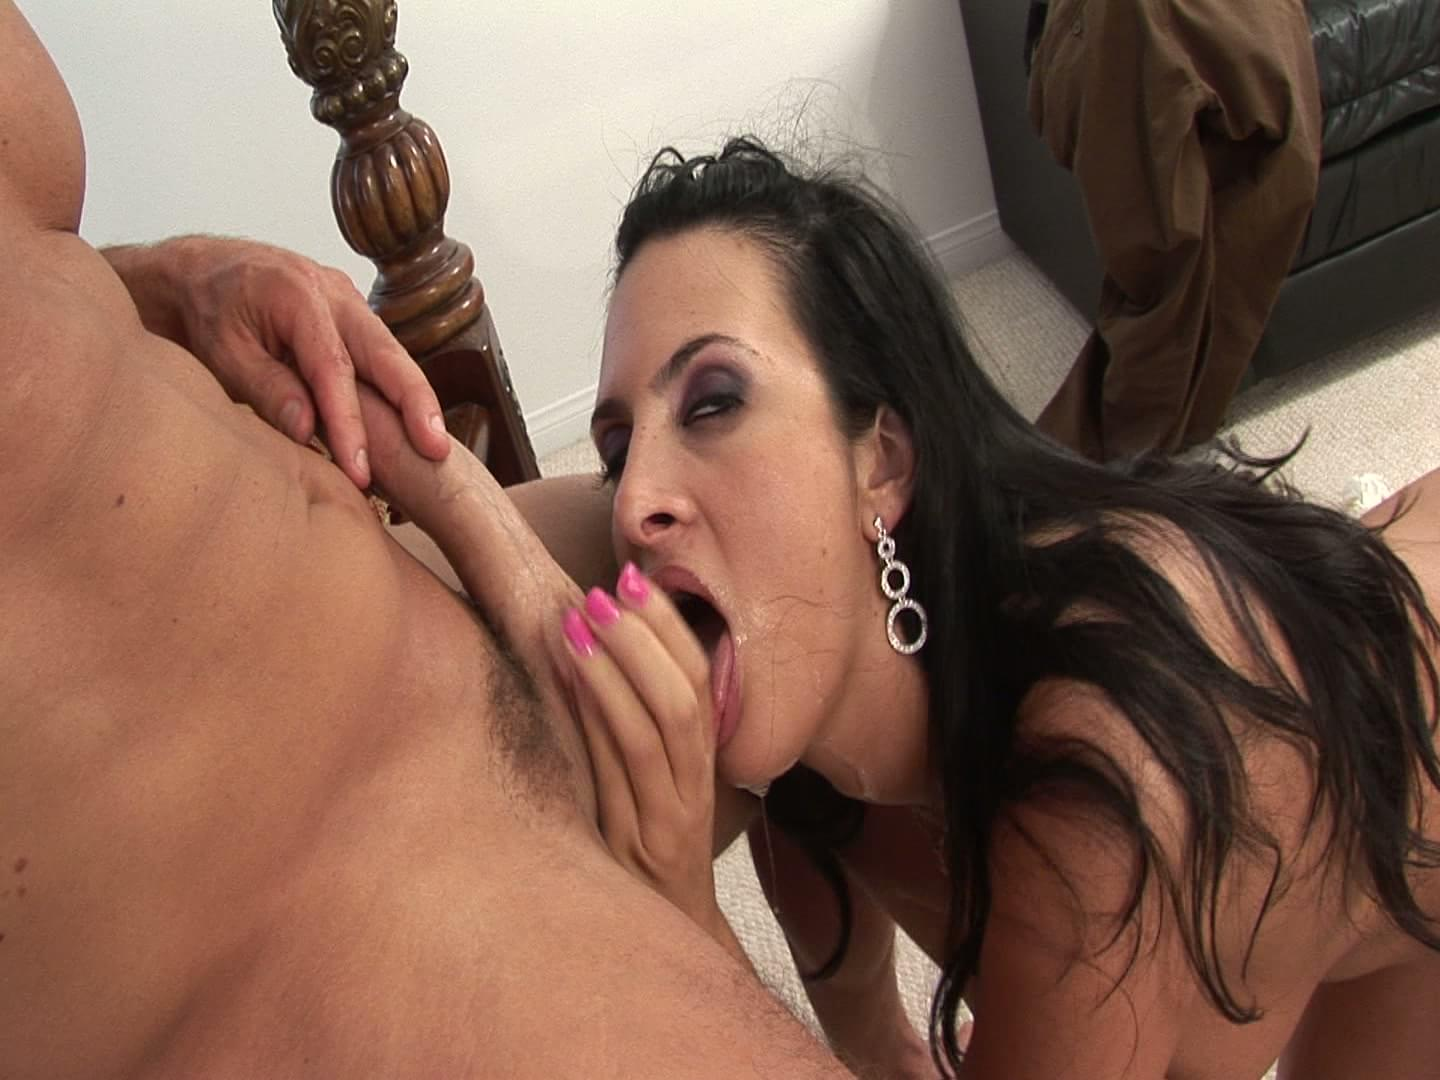 Blowjob with Brother in room